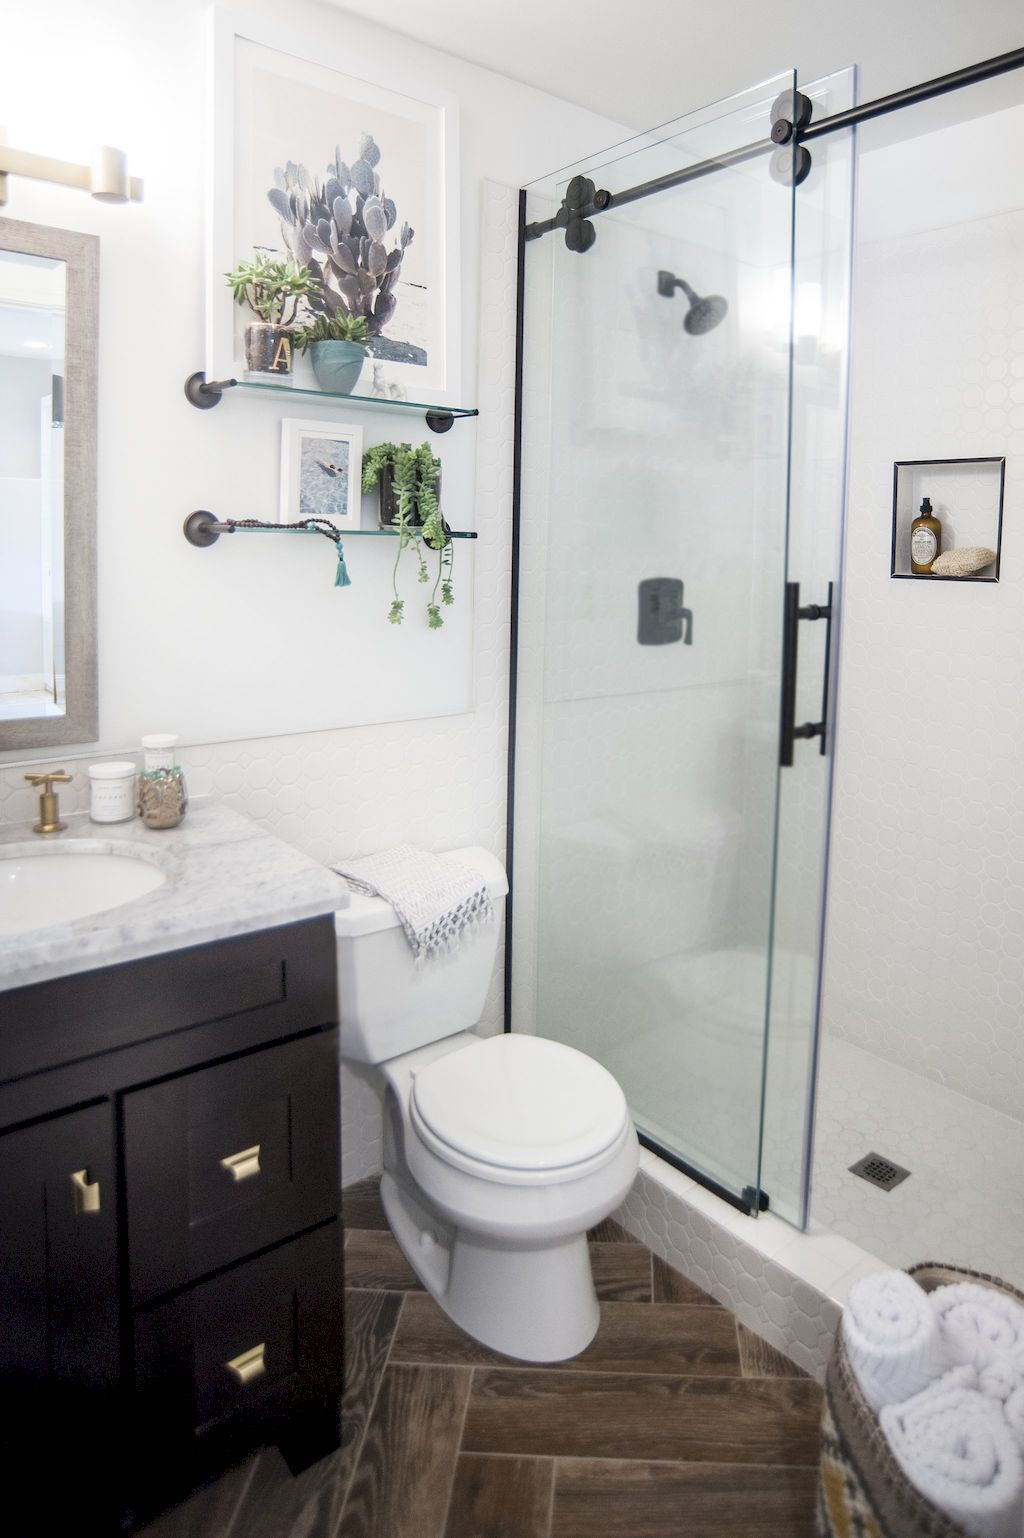 Small Bathroom Remodel Ideas With Shower Only Remodeling Bathroom Design Designs Plans Sma Small Bathroom Renovations Bathroom Remodel Master Bathroom Makeover